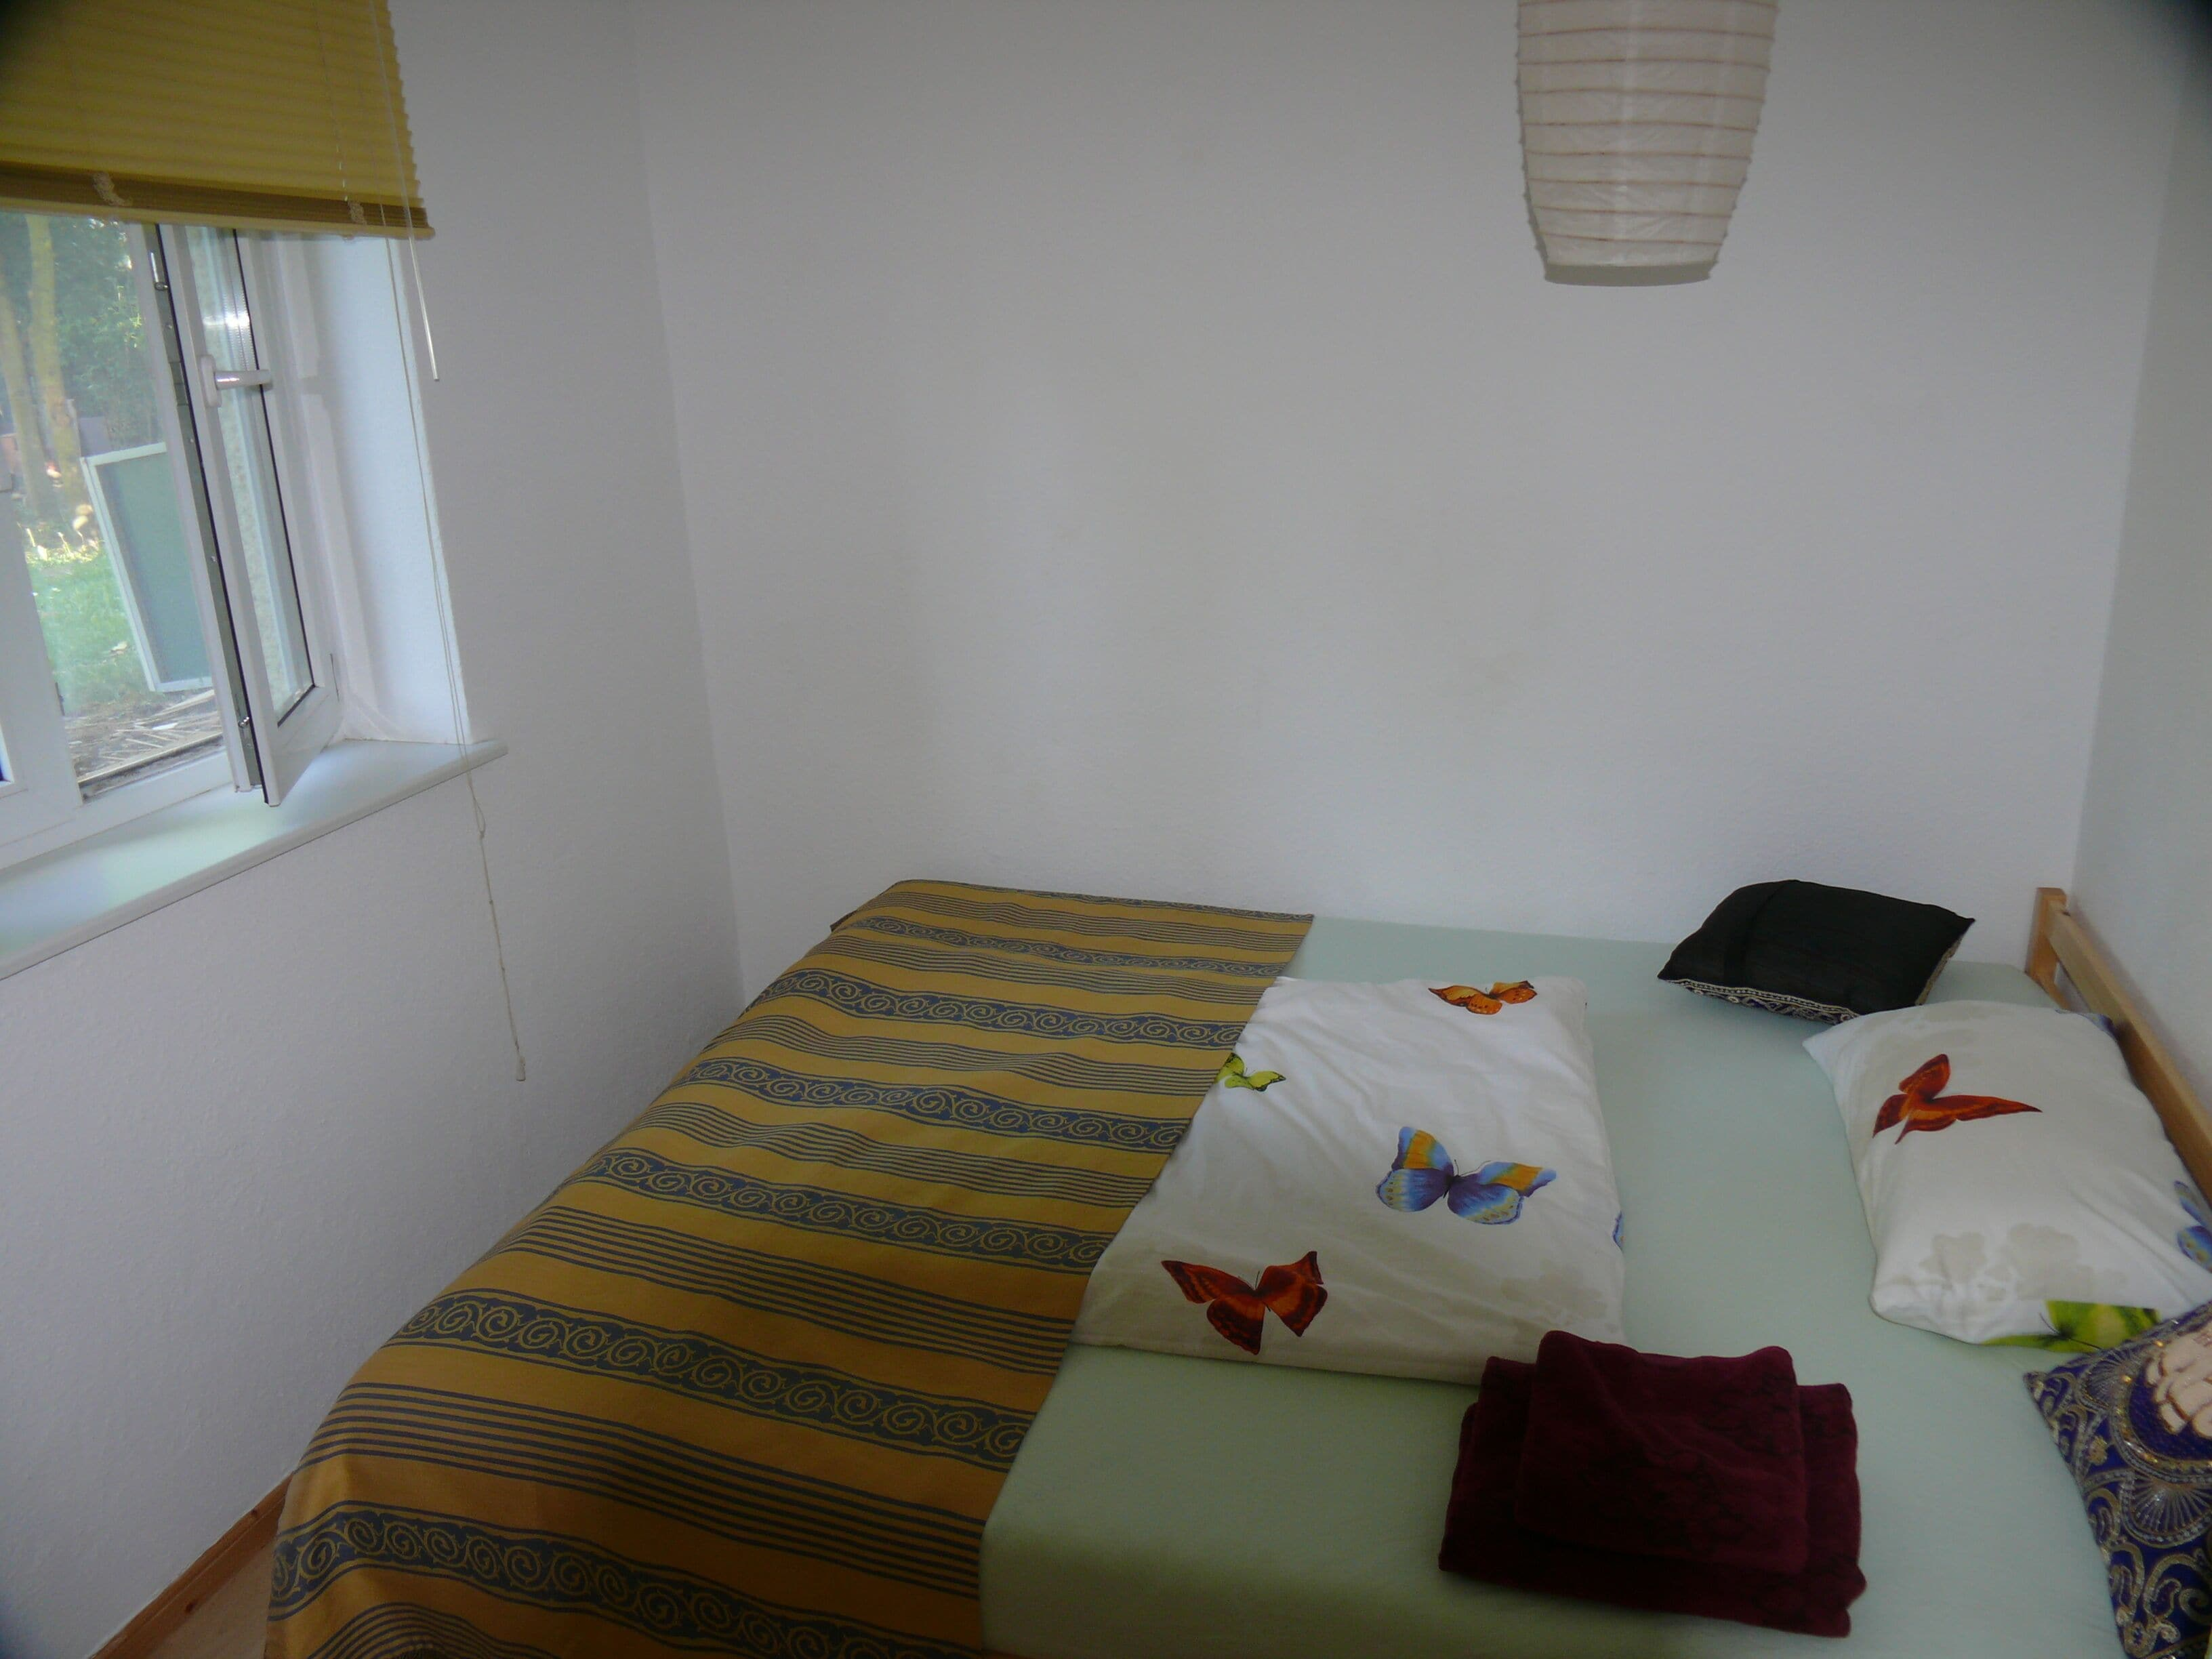 Villa Up To 4 Persons Ideal For A Couple Up To 2 Children Berlin Hotelbewertungen 2021 Expedia At